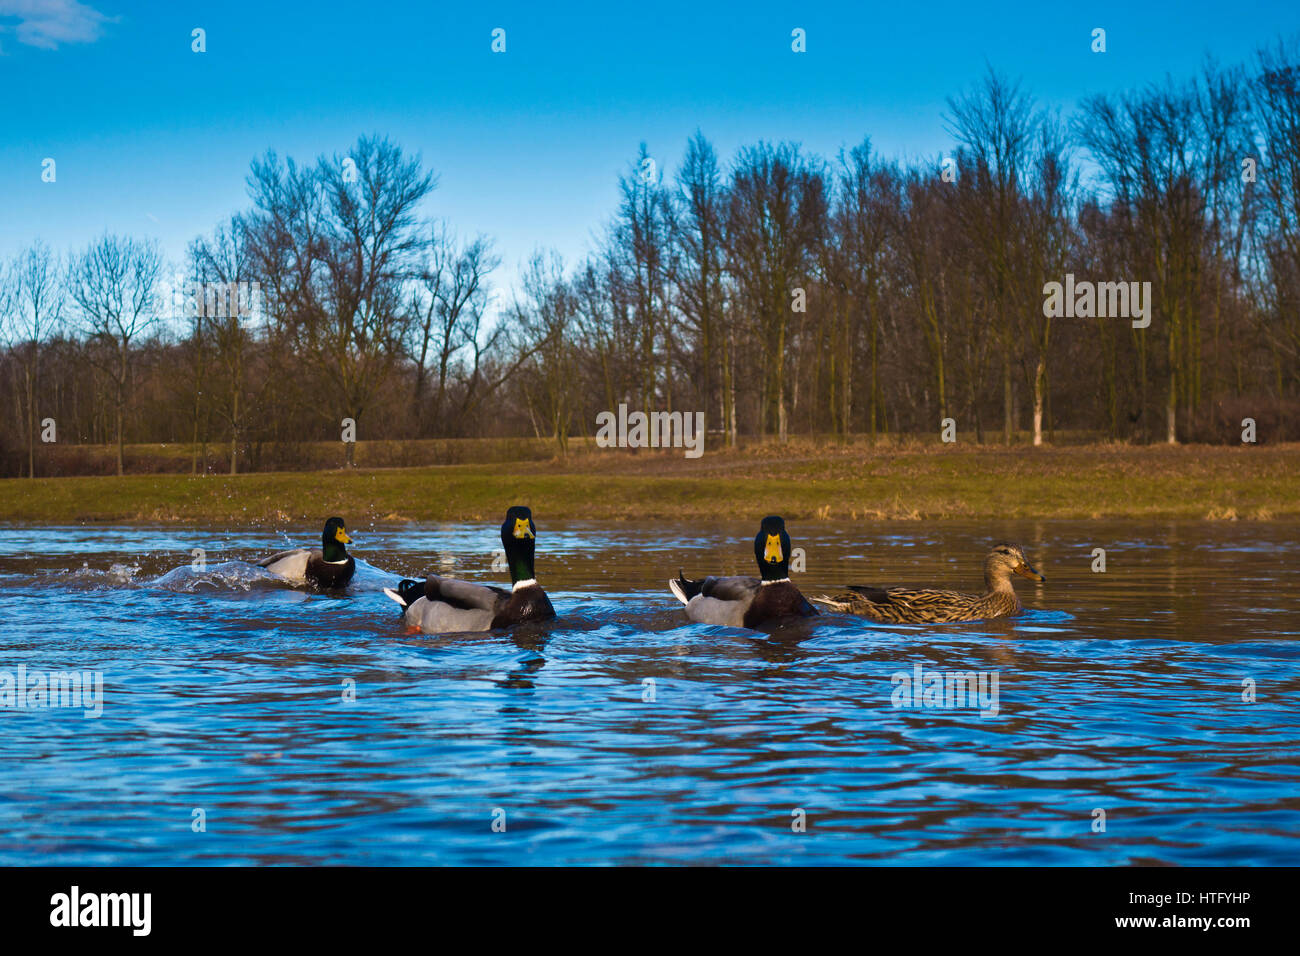 Mallard ducks swimming in the river, low angle view - Stock Image